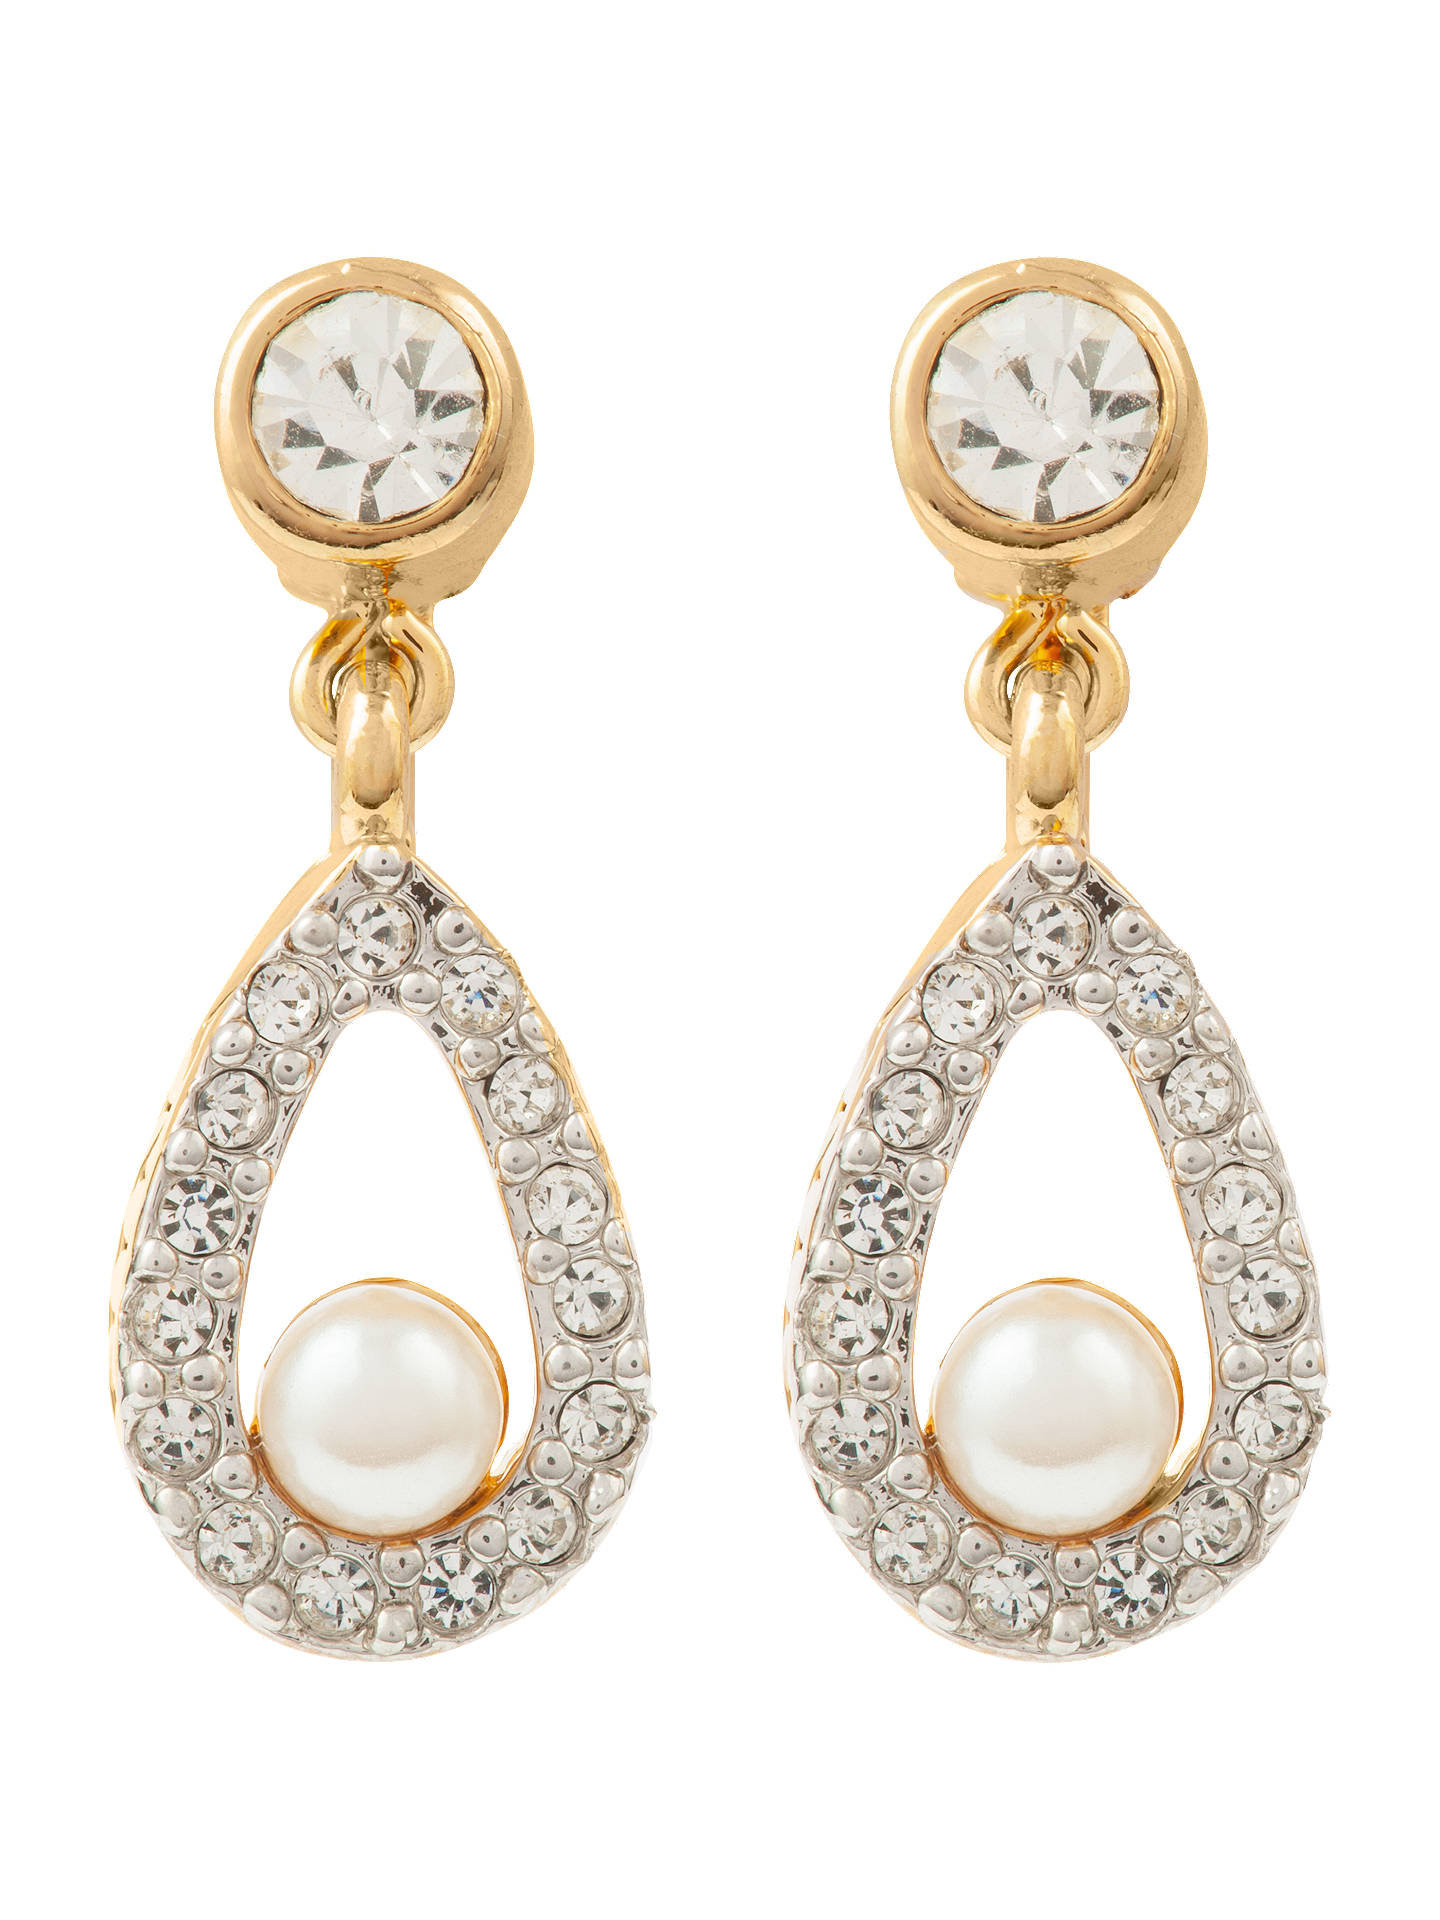 48ed4014a Susan Caplan Vintage Nina Ricci 22ct Gold Plated Faux Pearl Swarovski  Crystal Clip-On Drop Earrings, Gold